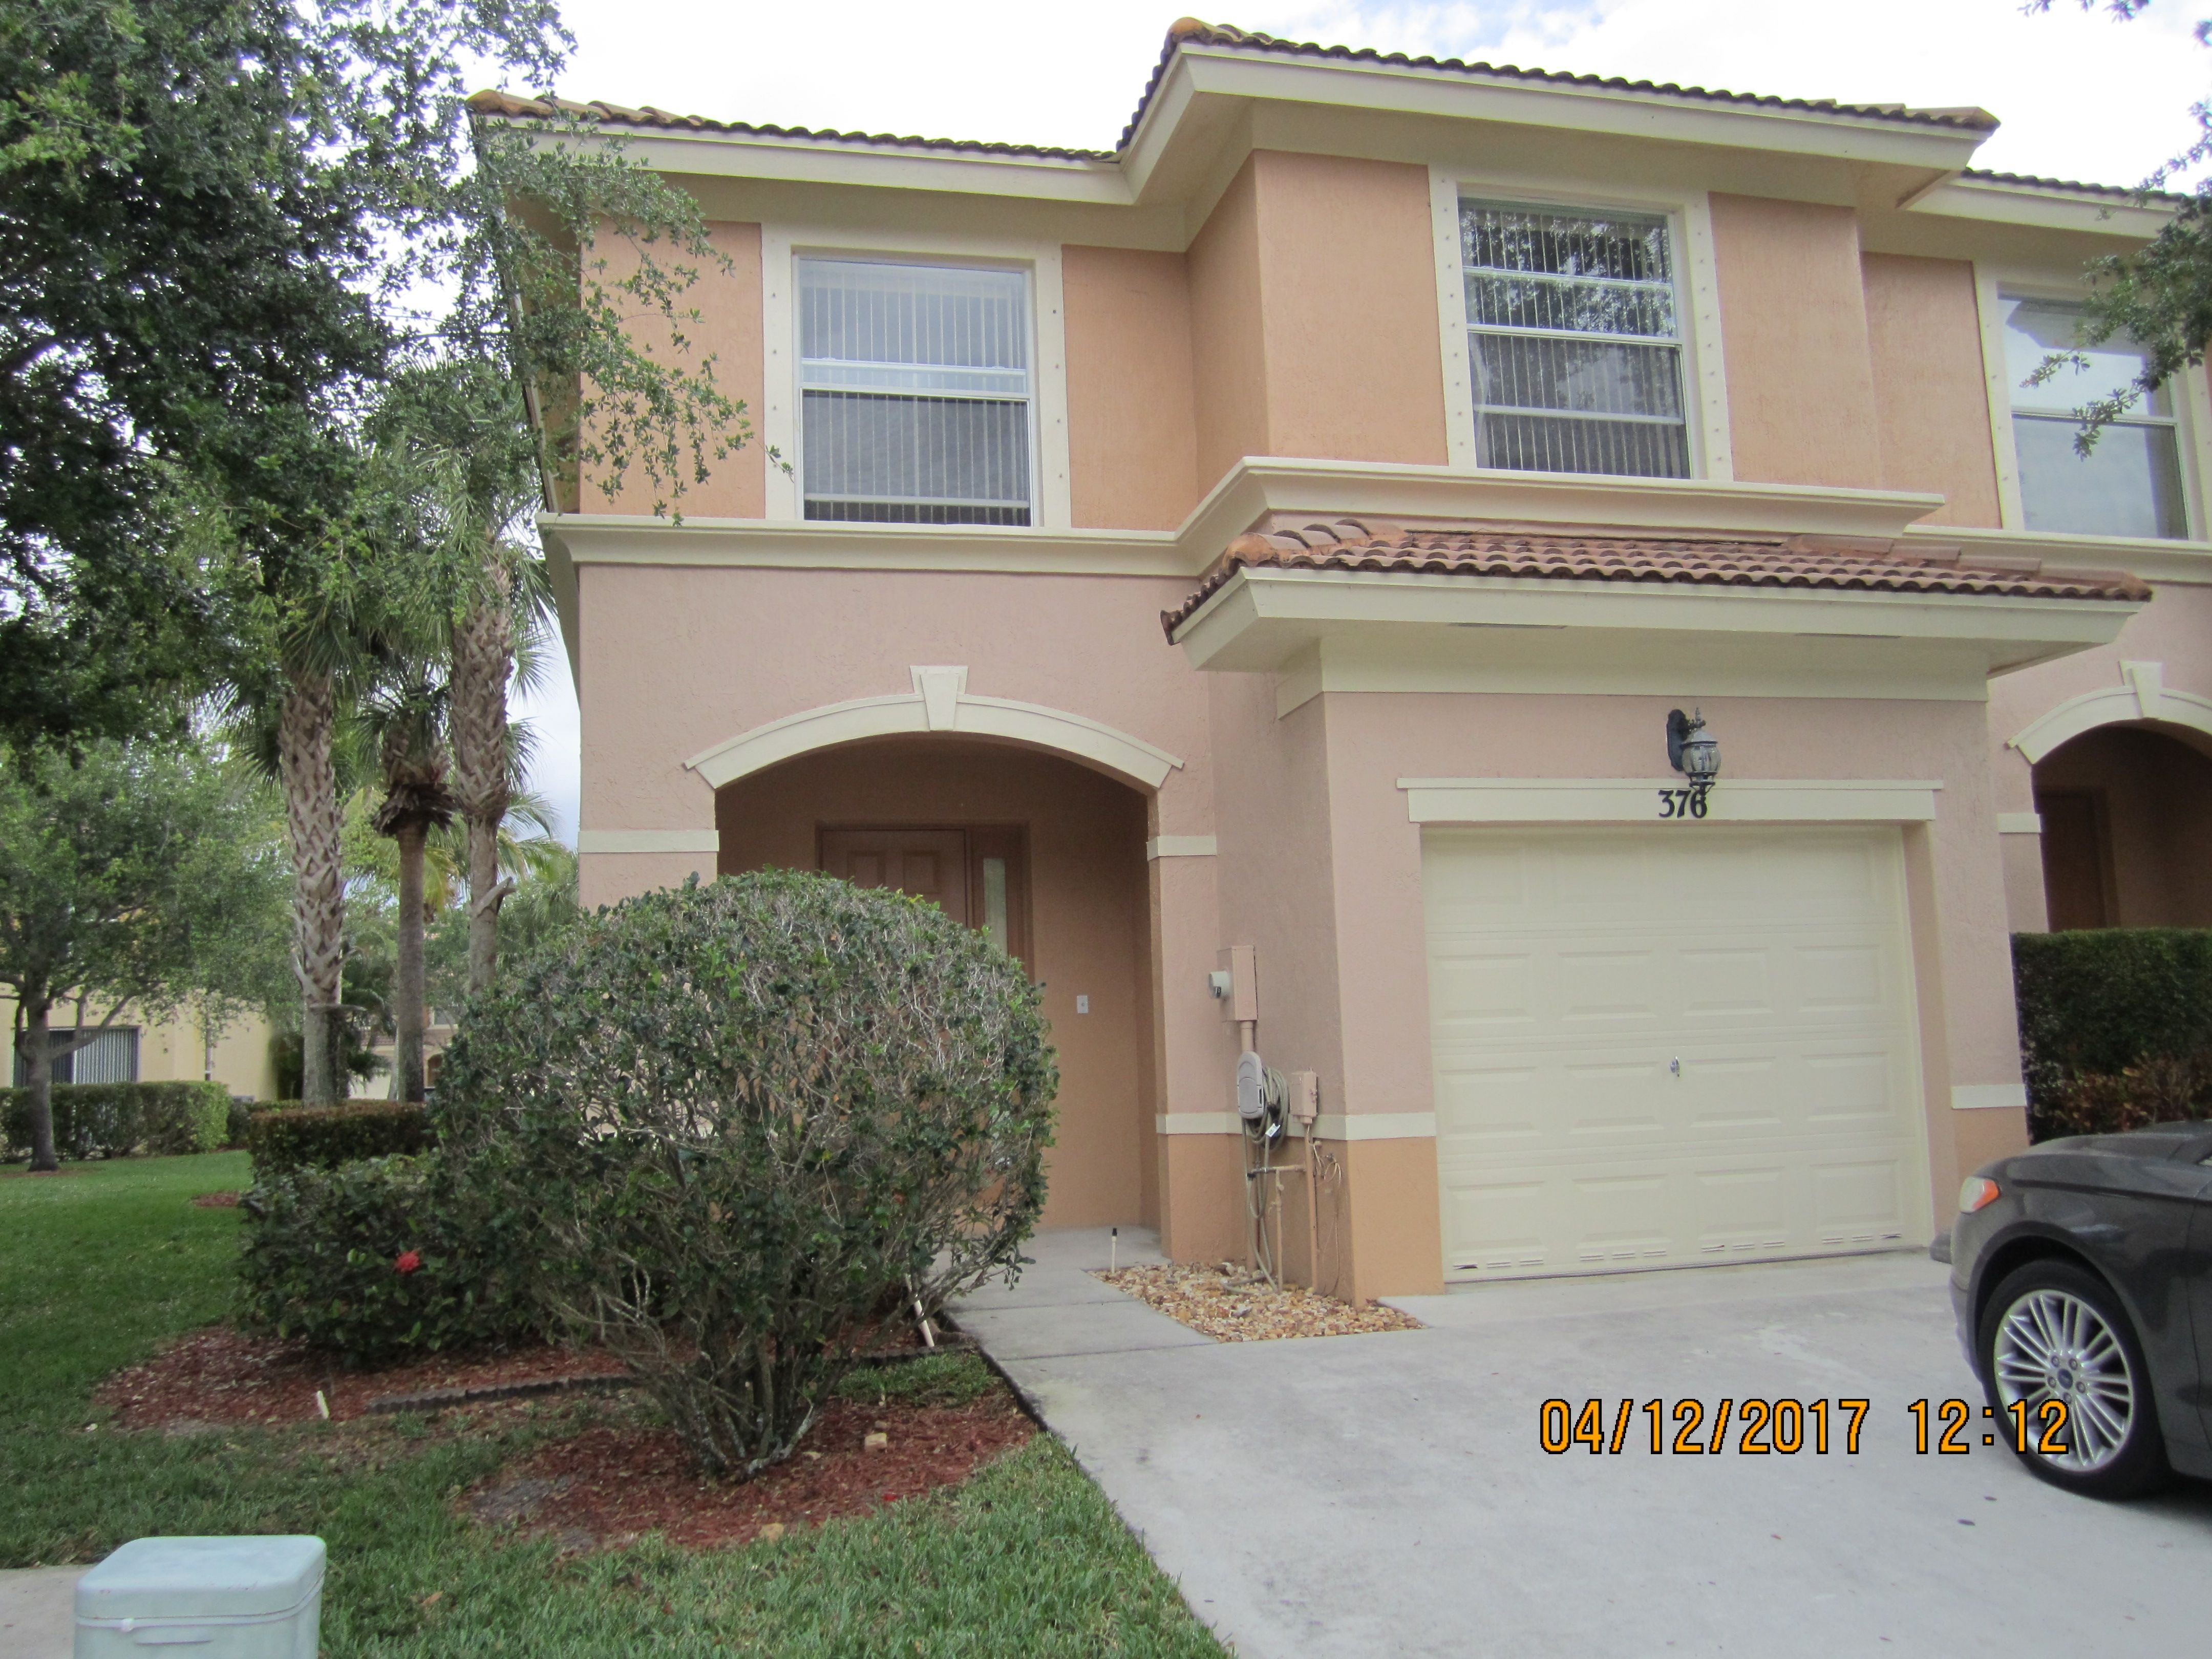 376 River Bluff Lane Royal Palm Beach Fl Townhome Rental Asking 1800 Month 3 2 1 1 Home With Partial Garage Royal Palm Beach Palm Beach County Palm Beach